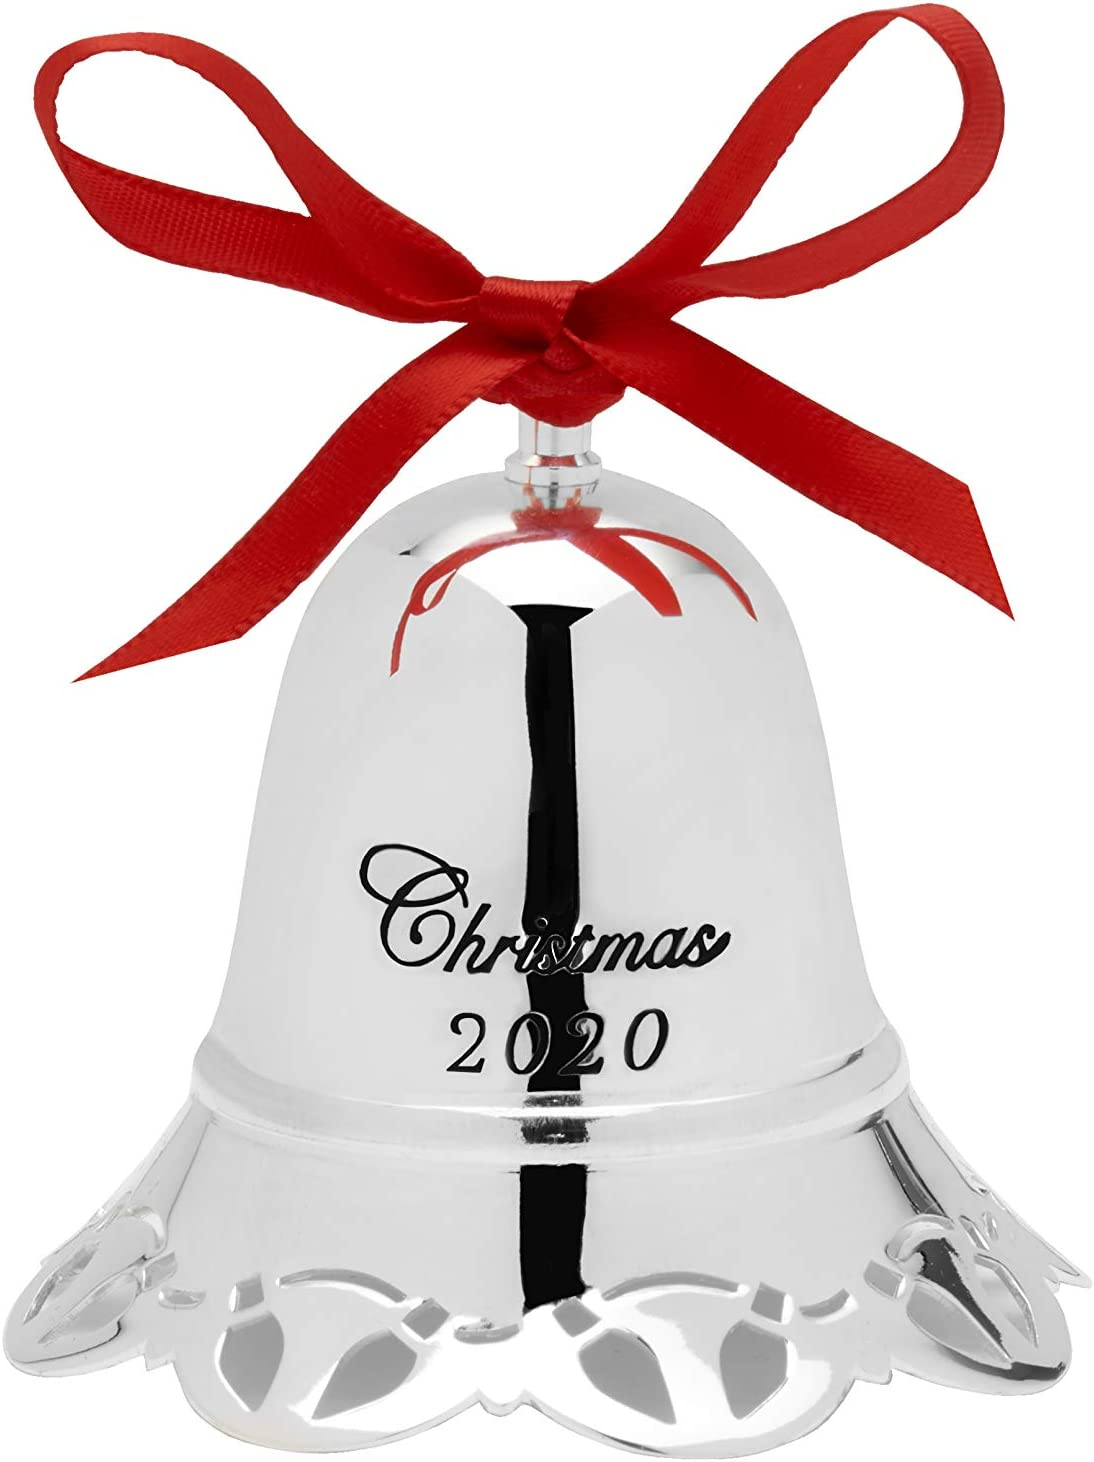 Towle 2020 Christmas Bell Amazon.com: Towle 2020 40th Edition Annual Musical Bell Ornament